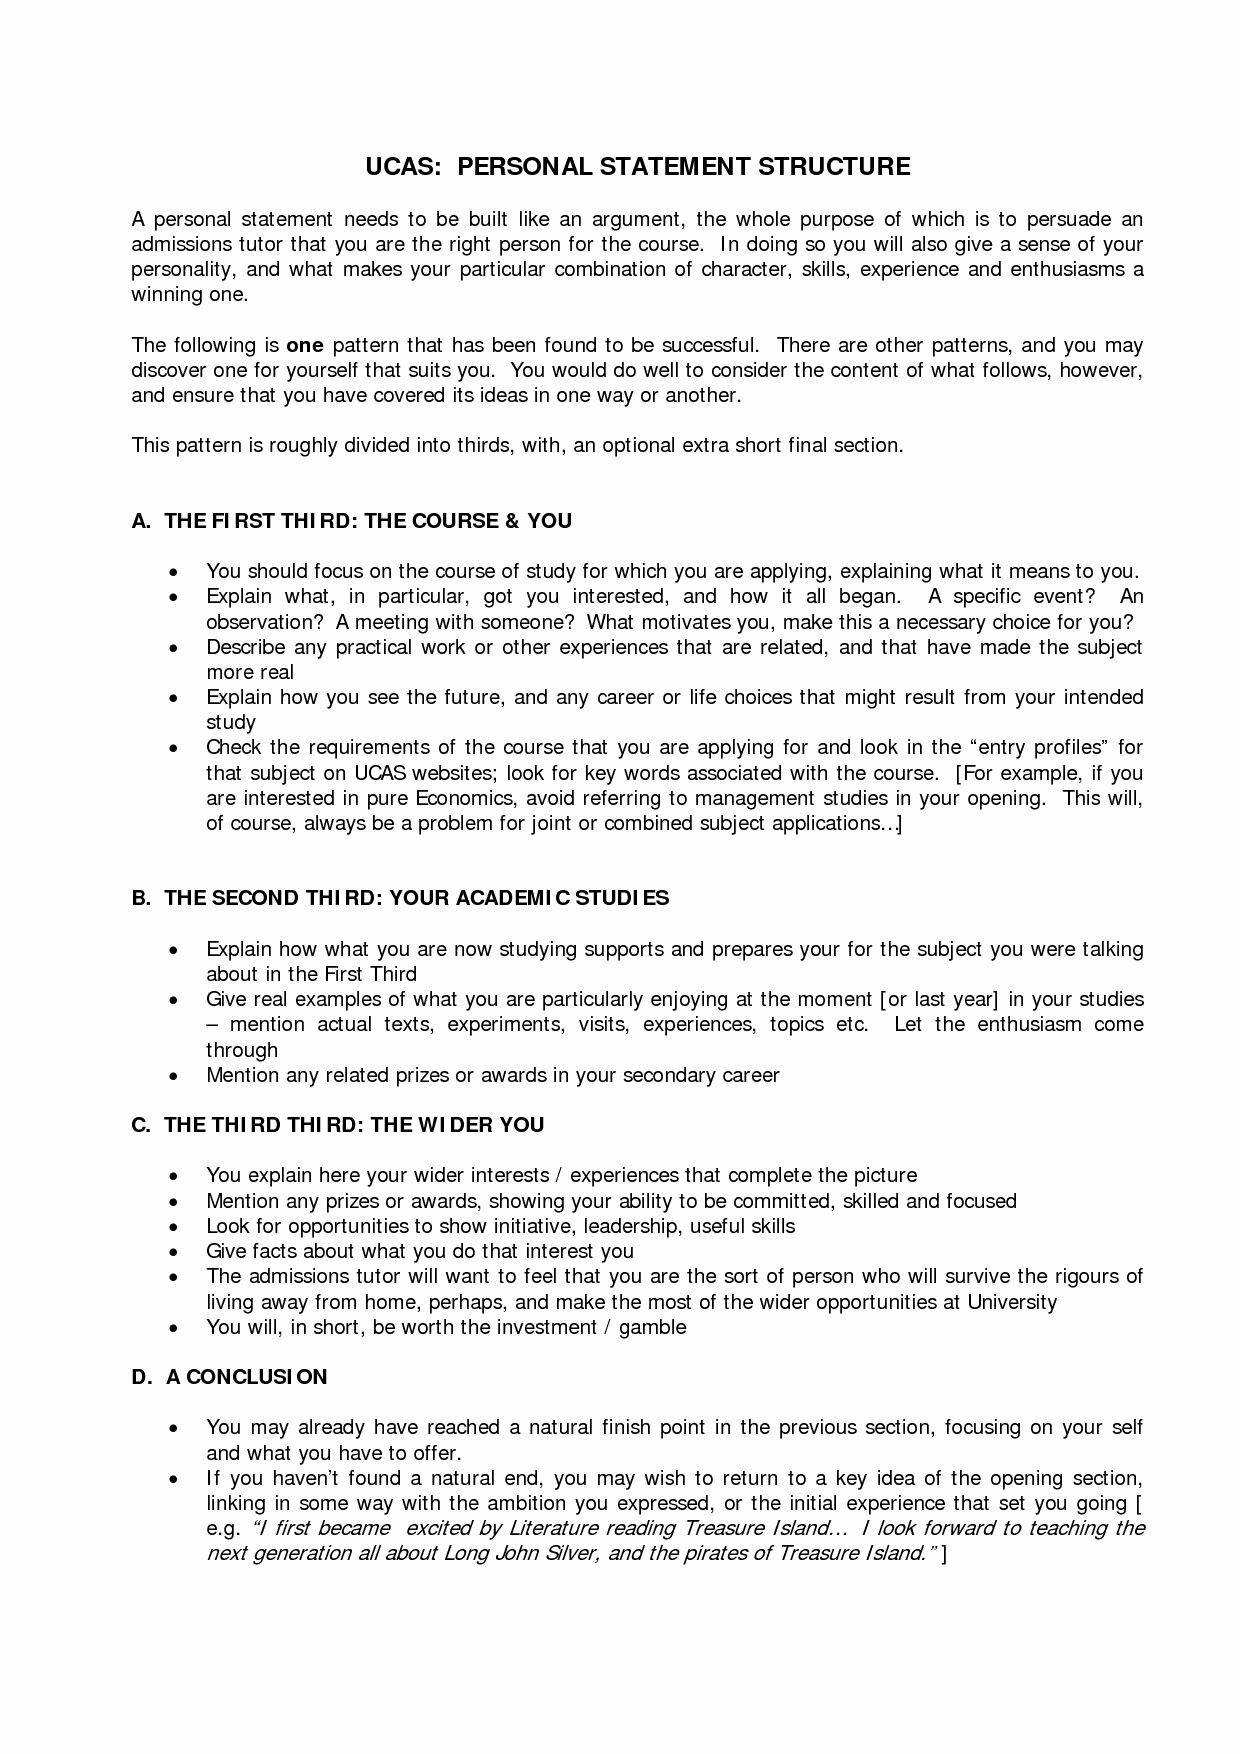 Academic Personal Statement Example Unique Template Uca Googl Grad School What Make A Strong